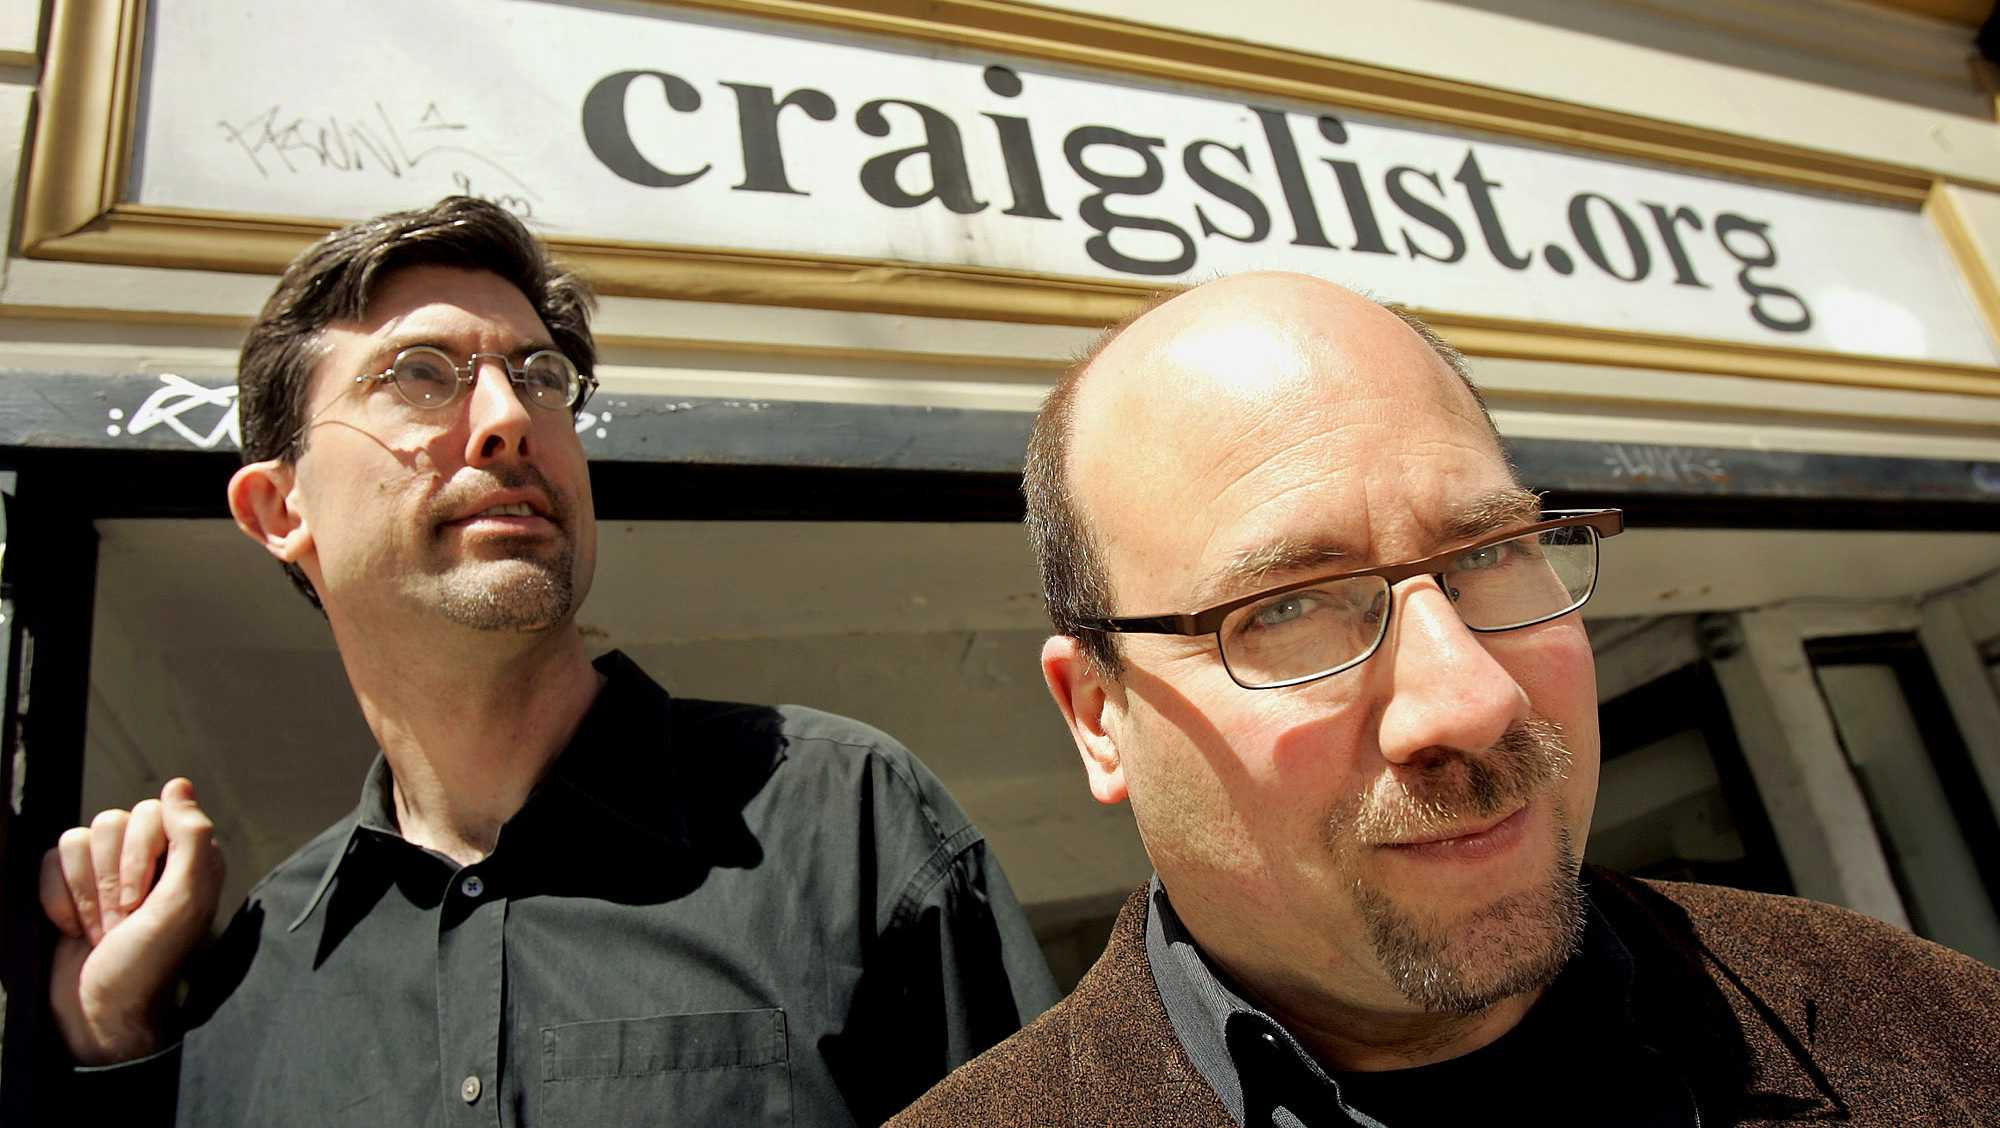 Craigslist.org CEO Jim Buckmaster, left, and founder Craig Newmark are photographed outside of their office in San Francisco on Thursday, April 14, 2005.